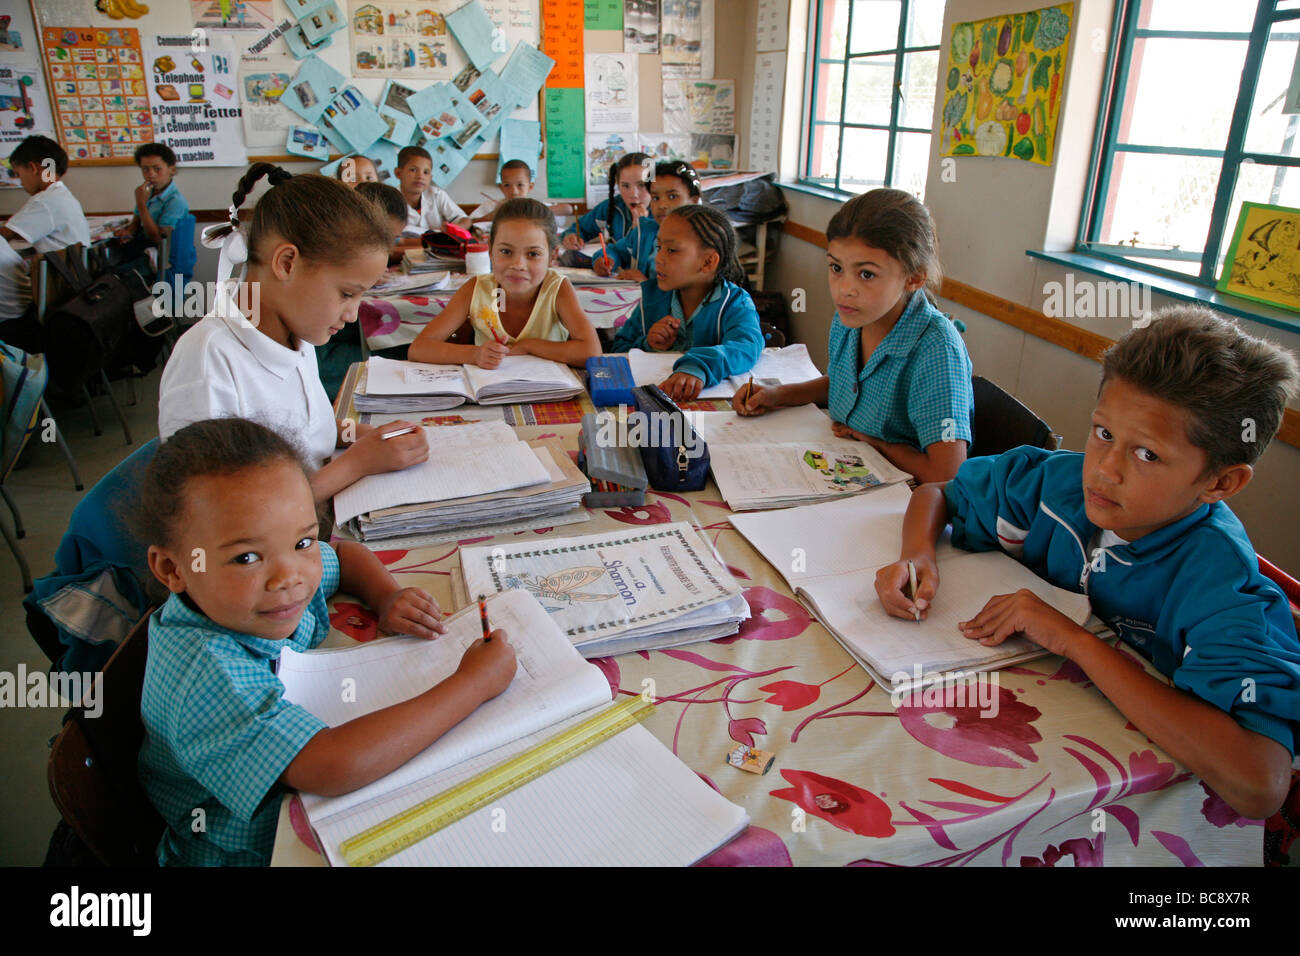 Painet jj1778 background school book namibia rehobeth primary people person school book namibia rehobeth primary Stock Photo